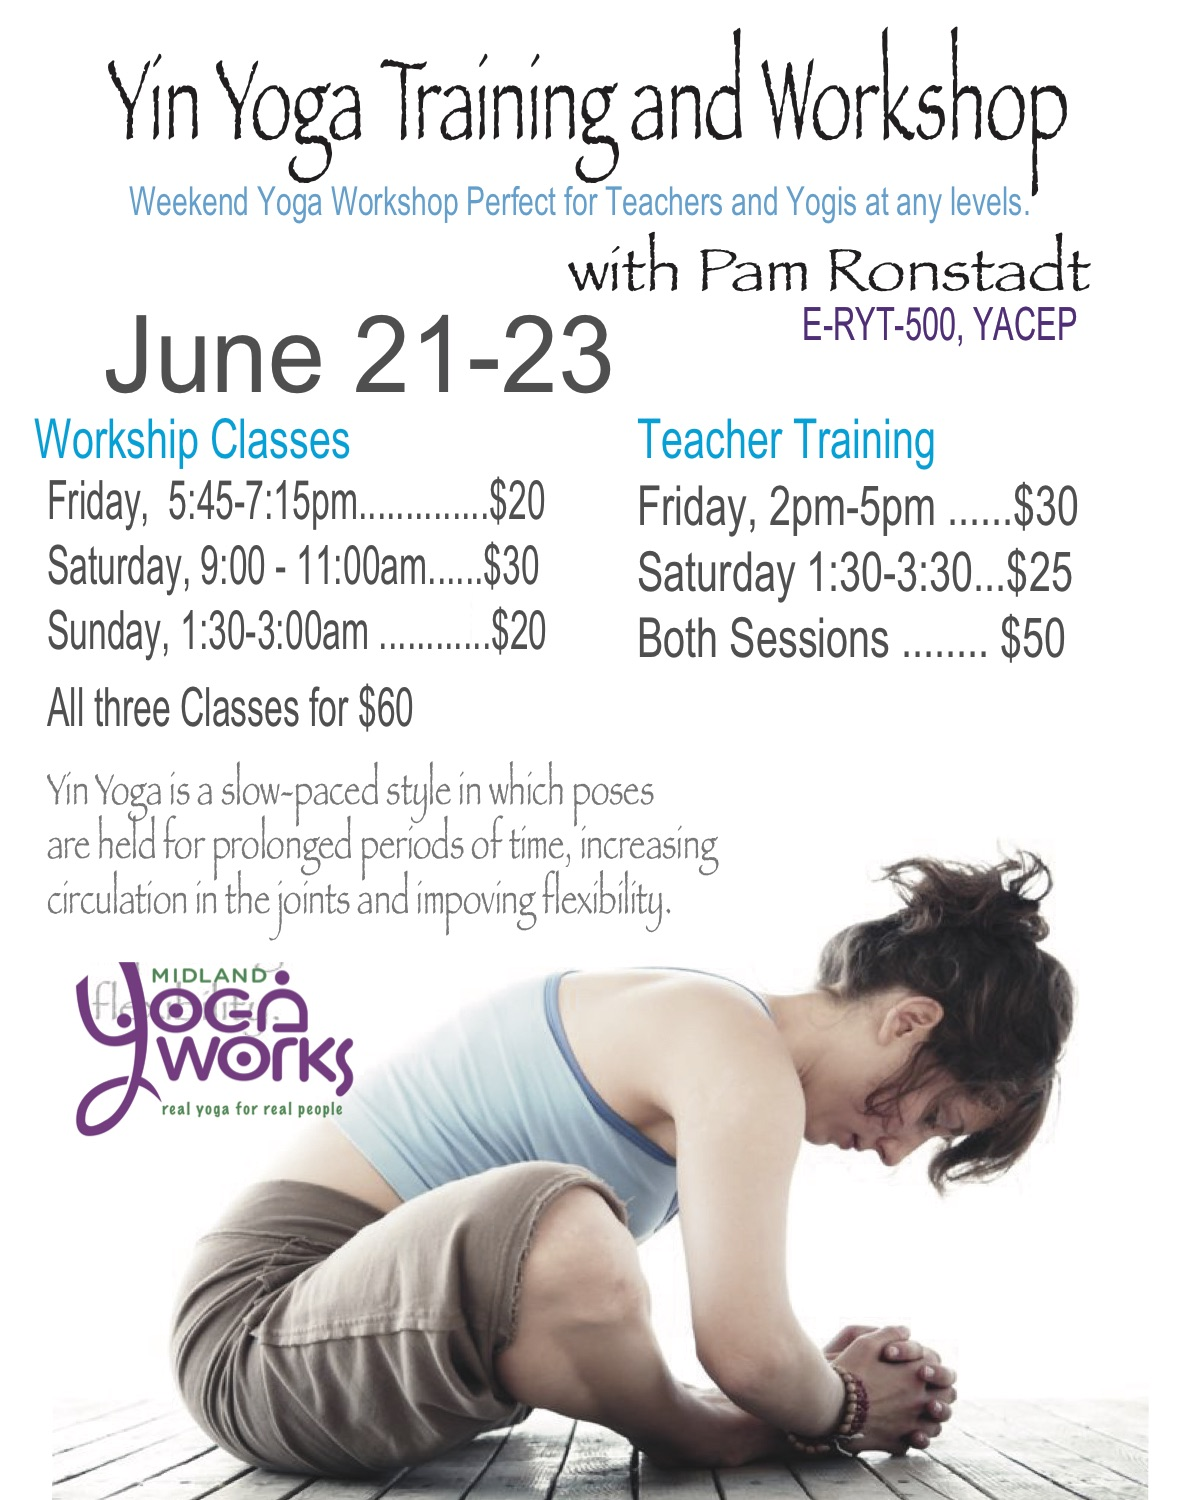 Yin Yoga Workshop copy.jpg